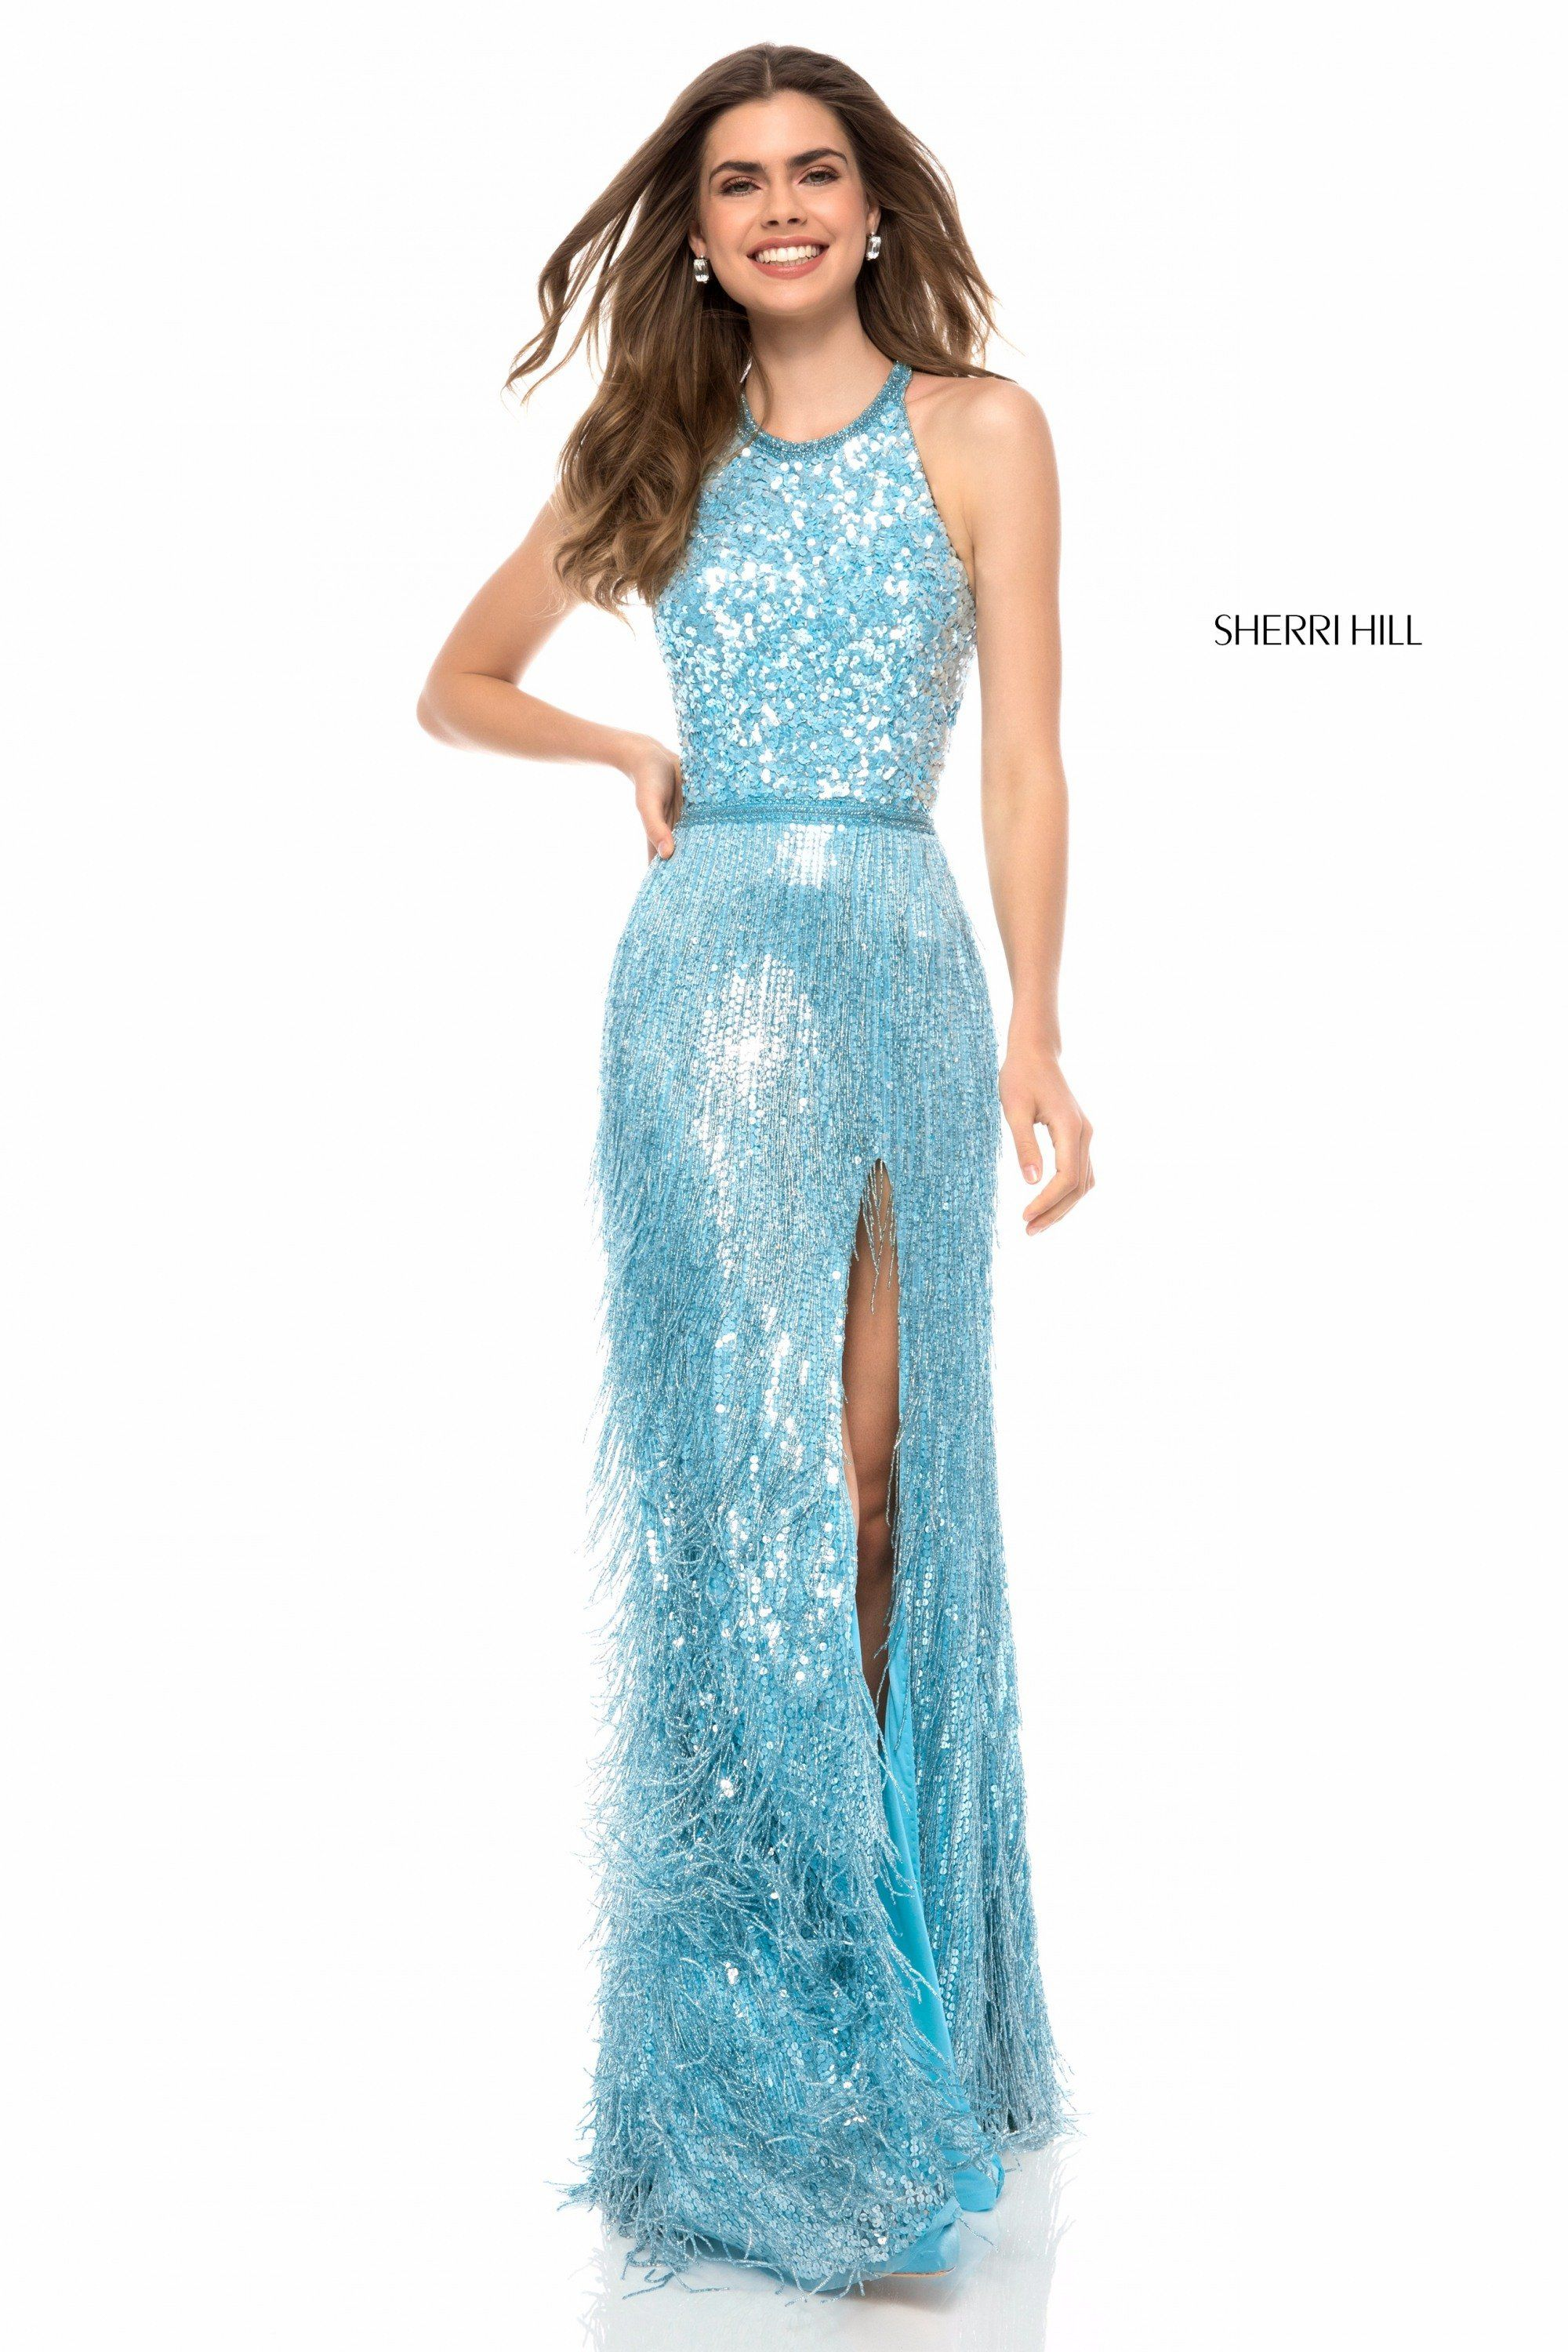 Sherri Hill 52067 | Prom, Pageants and Gowns